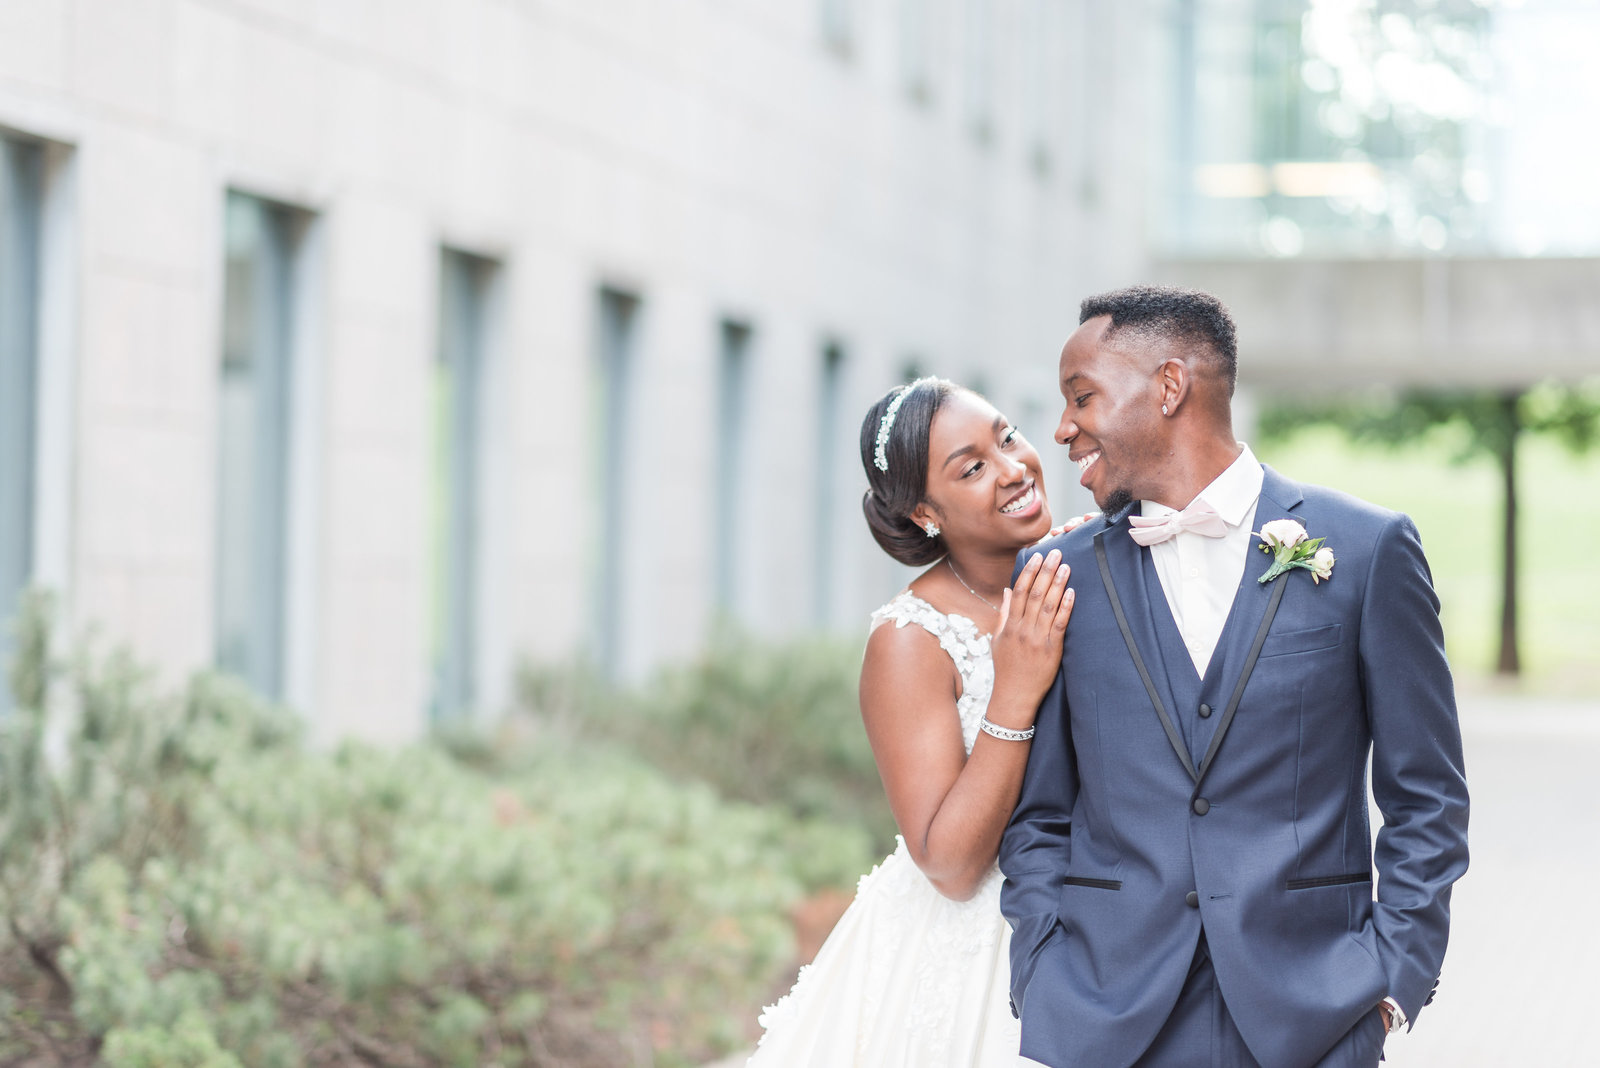 Samantha-Akeem-Wedding-170030